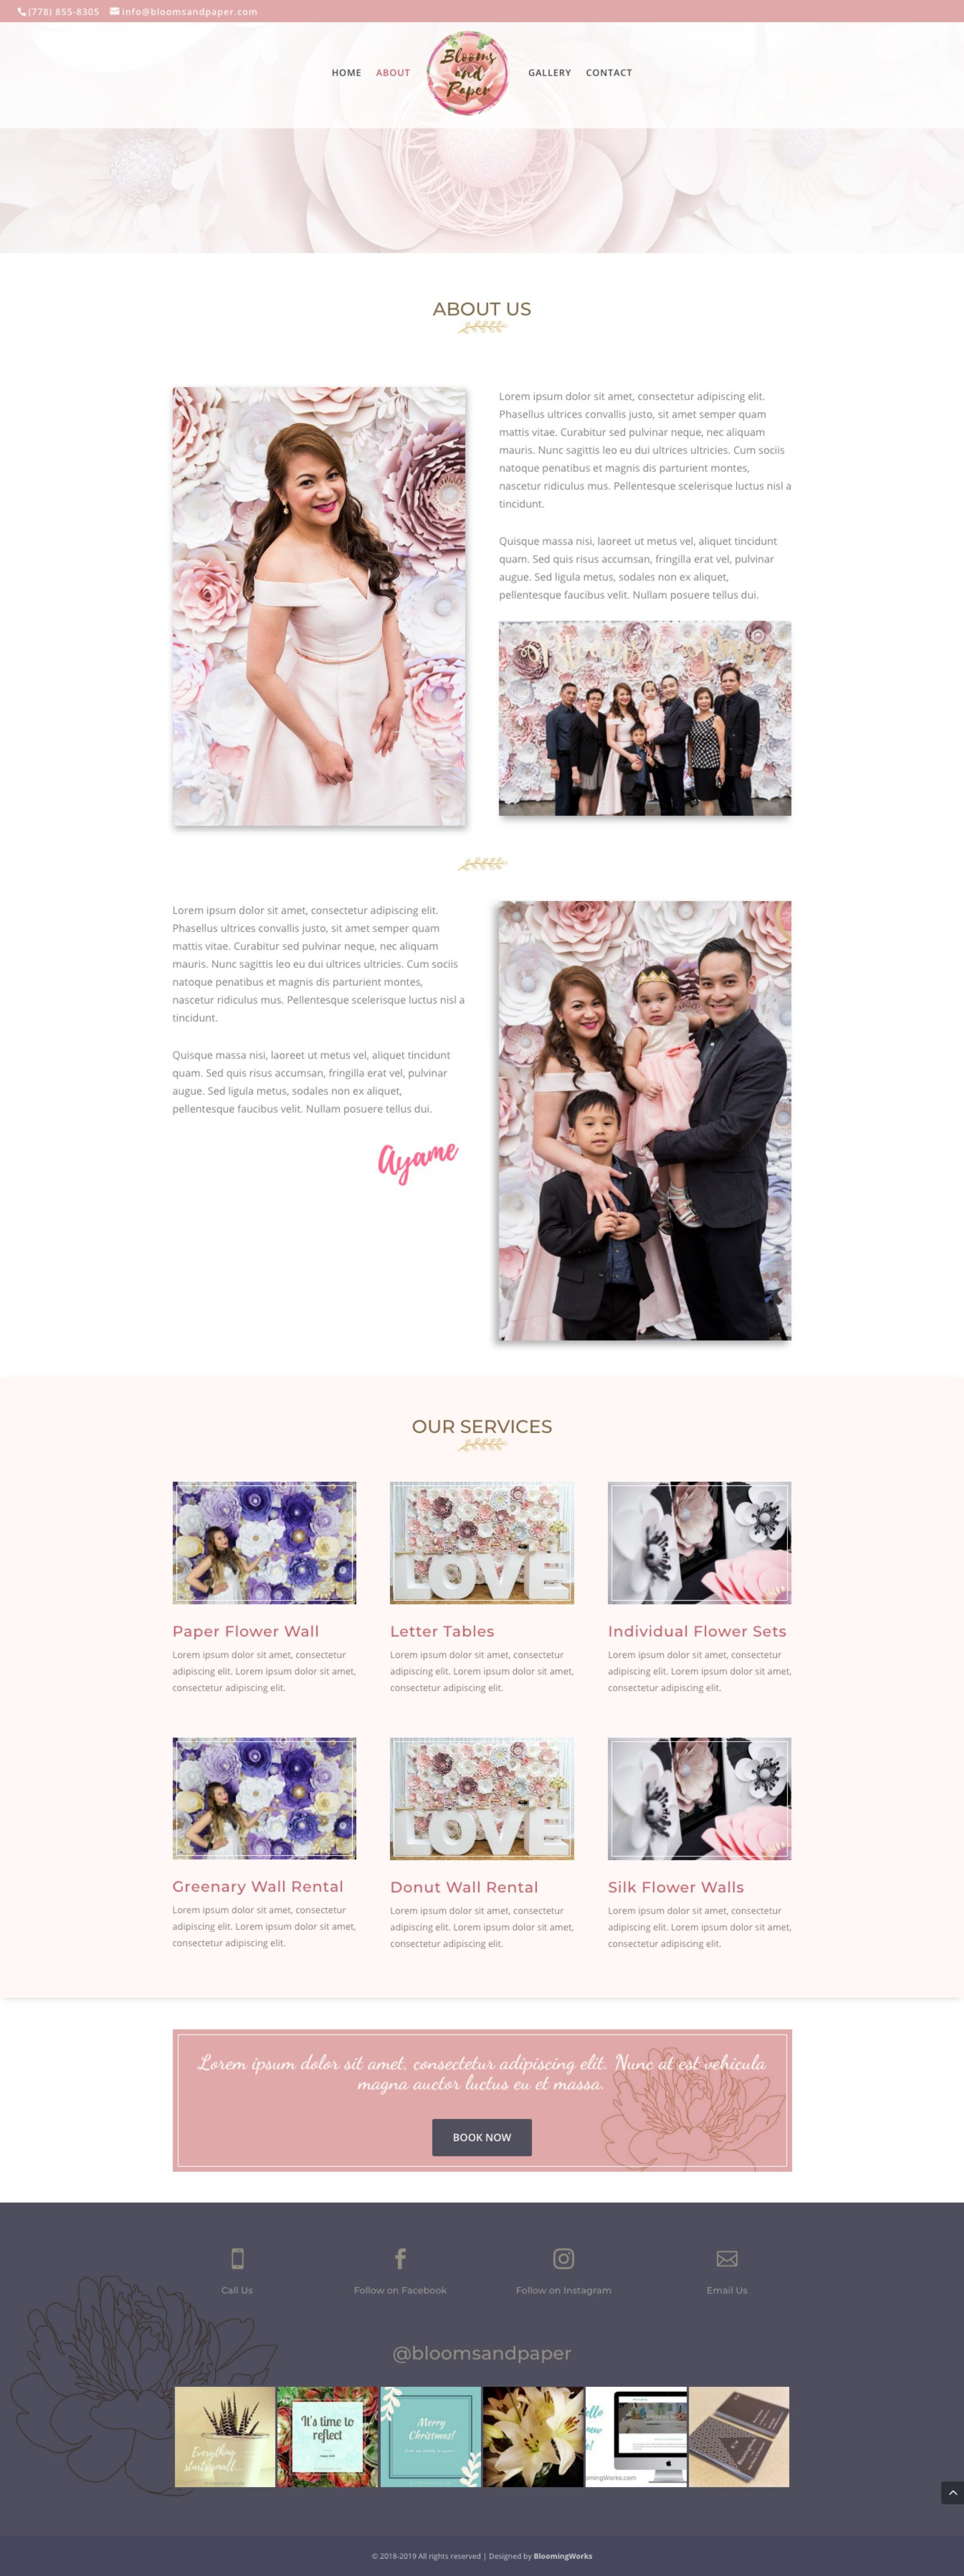 Florist Website in WordPress